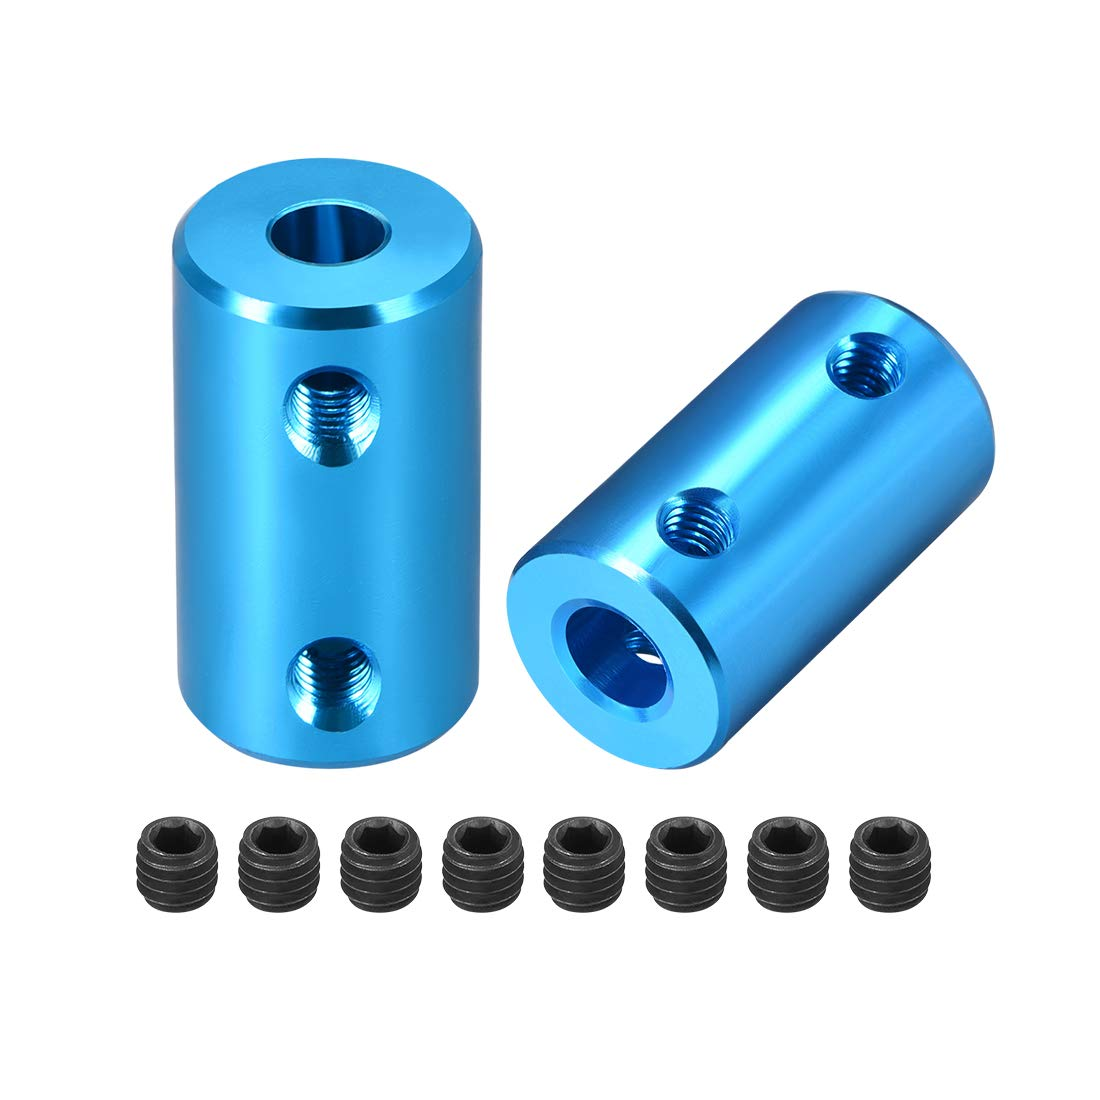 uxcell Shaft Coupling 5mm to 6mm Bore L25xD14 Robot Motor Wheel Rigid Coupler Connector Blue 2pcs